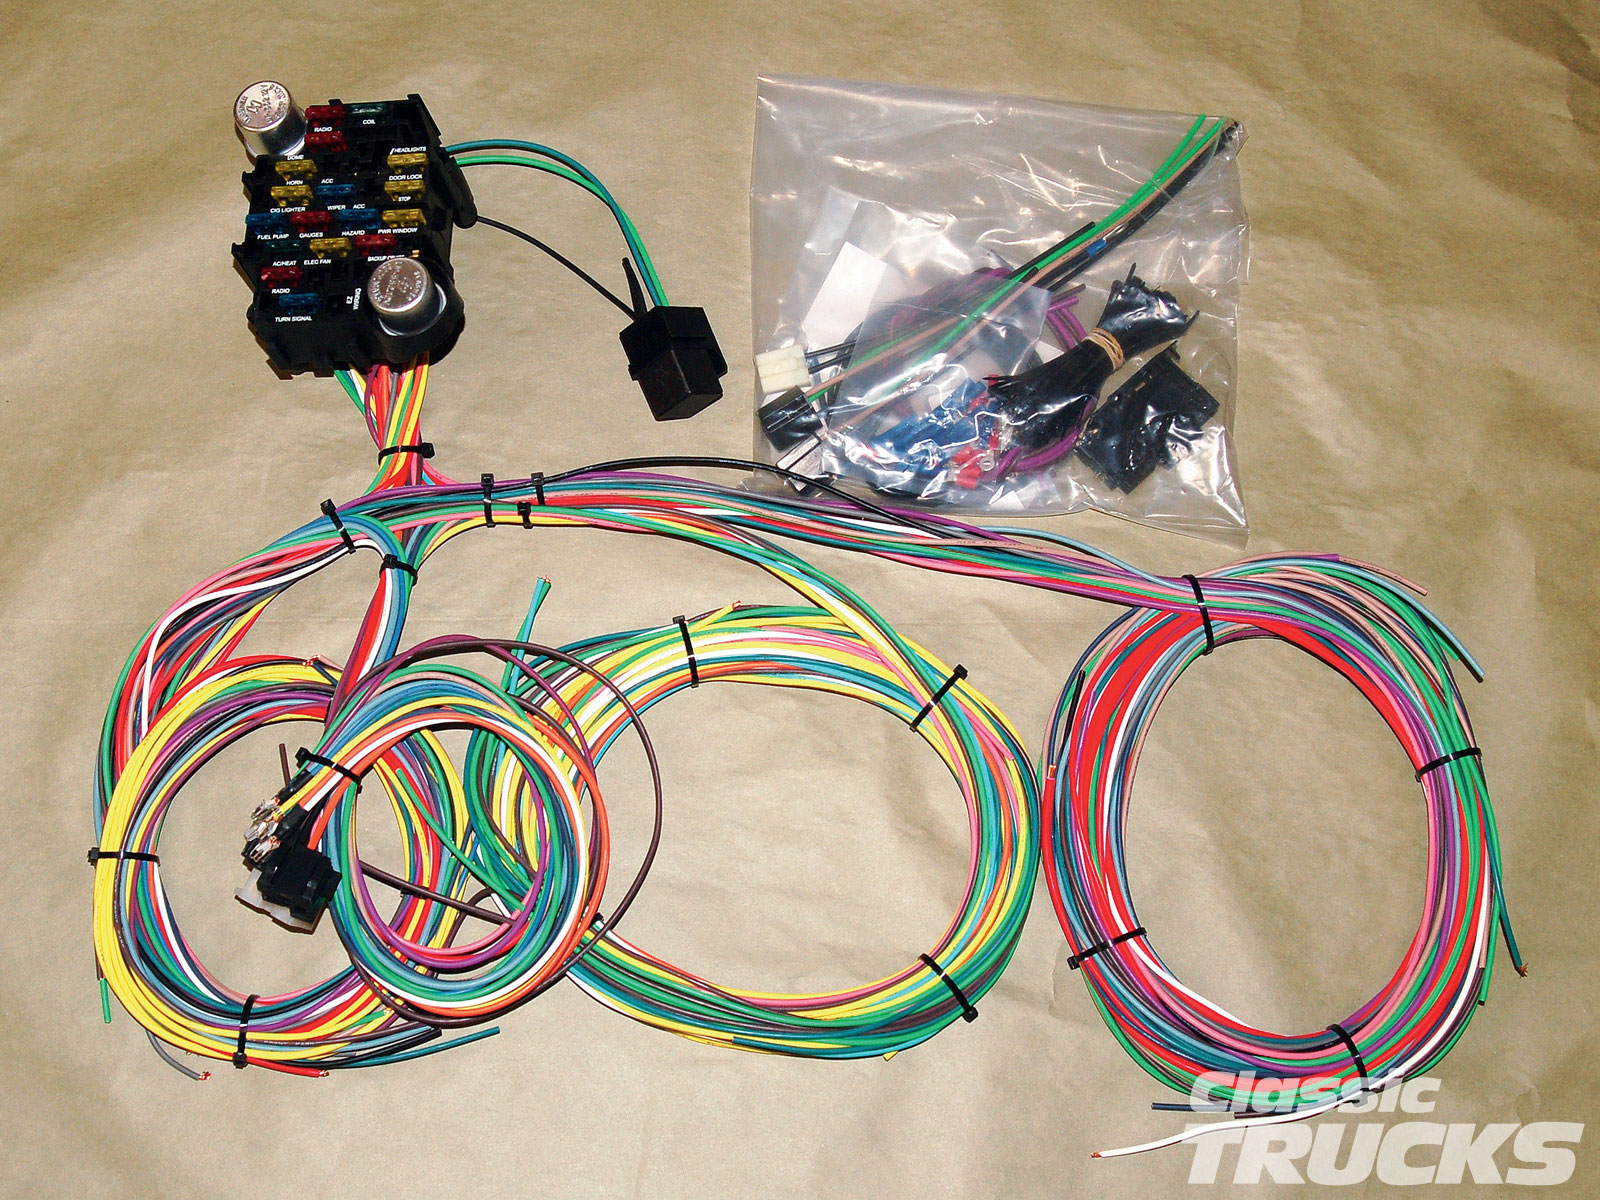 1010clt 02 o aftermarket wiring harness install kit?resize=640%2C480 how much does a wire harness cost to replace hobbiesxstyle how much does it cost to replace a wiring harness at mr168.co